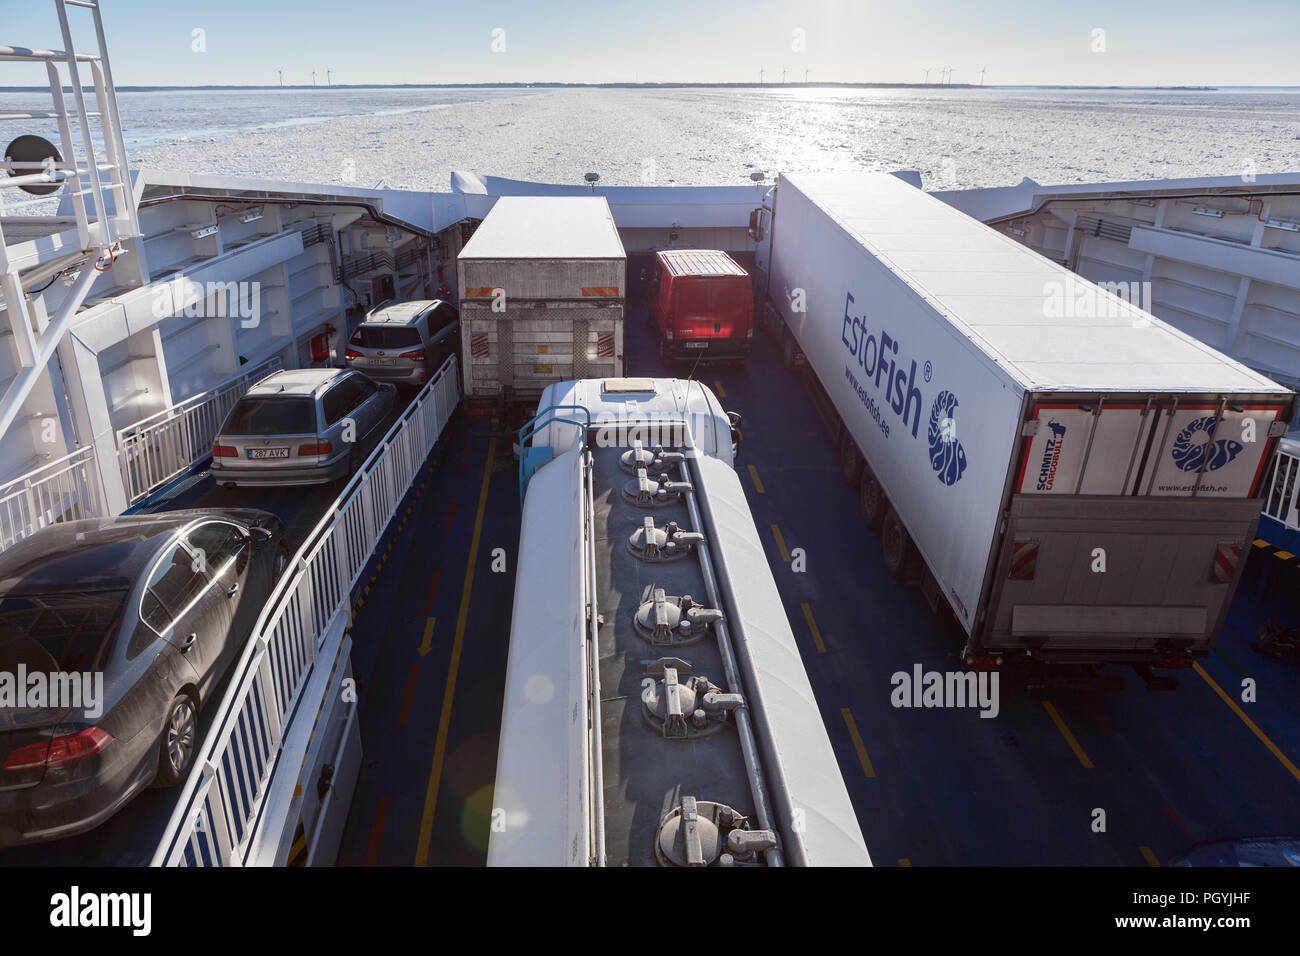 9bf35445167 ESTONIA- CIRCA MAR, 2018: Semitrailer trucks are parked on deck of ferry.